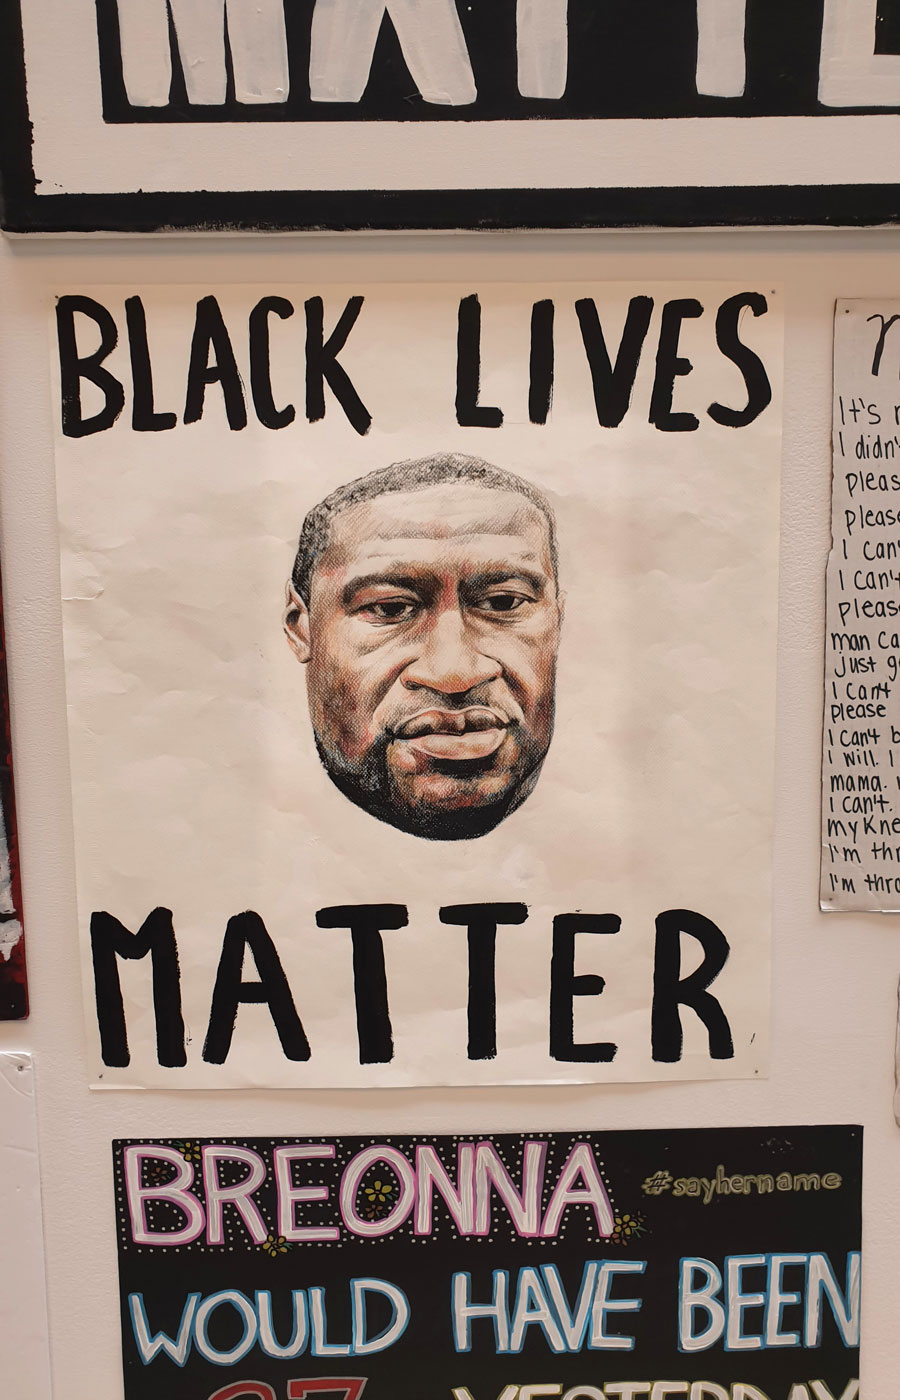 A Black Lives Matter sign with a drawing of George Floyd on it.